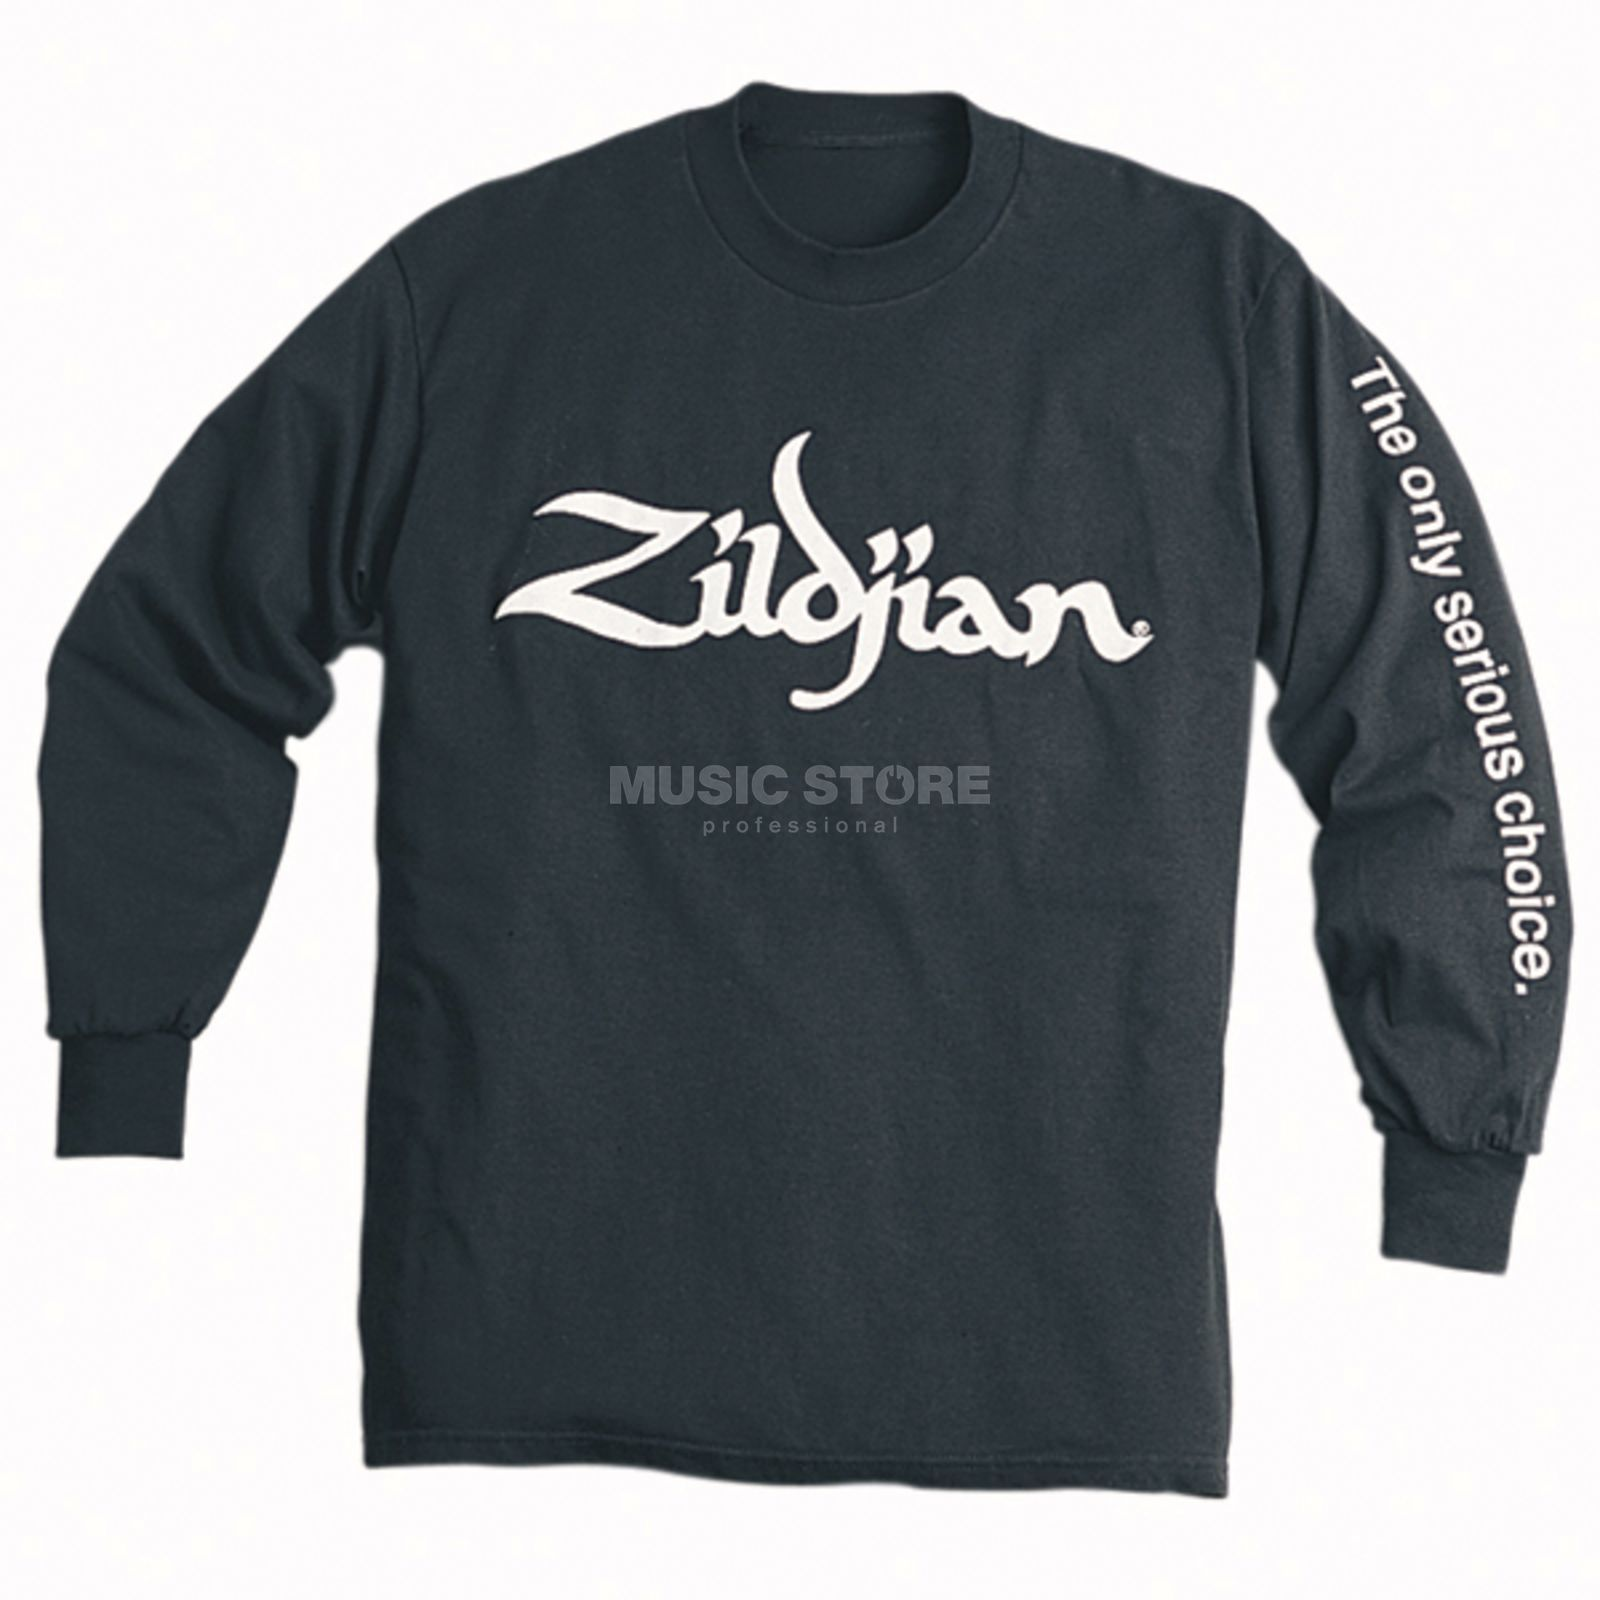 Zildjian Long Sleeve Shirt Black Large Produktbillede